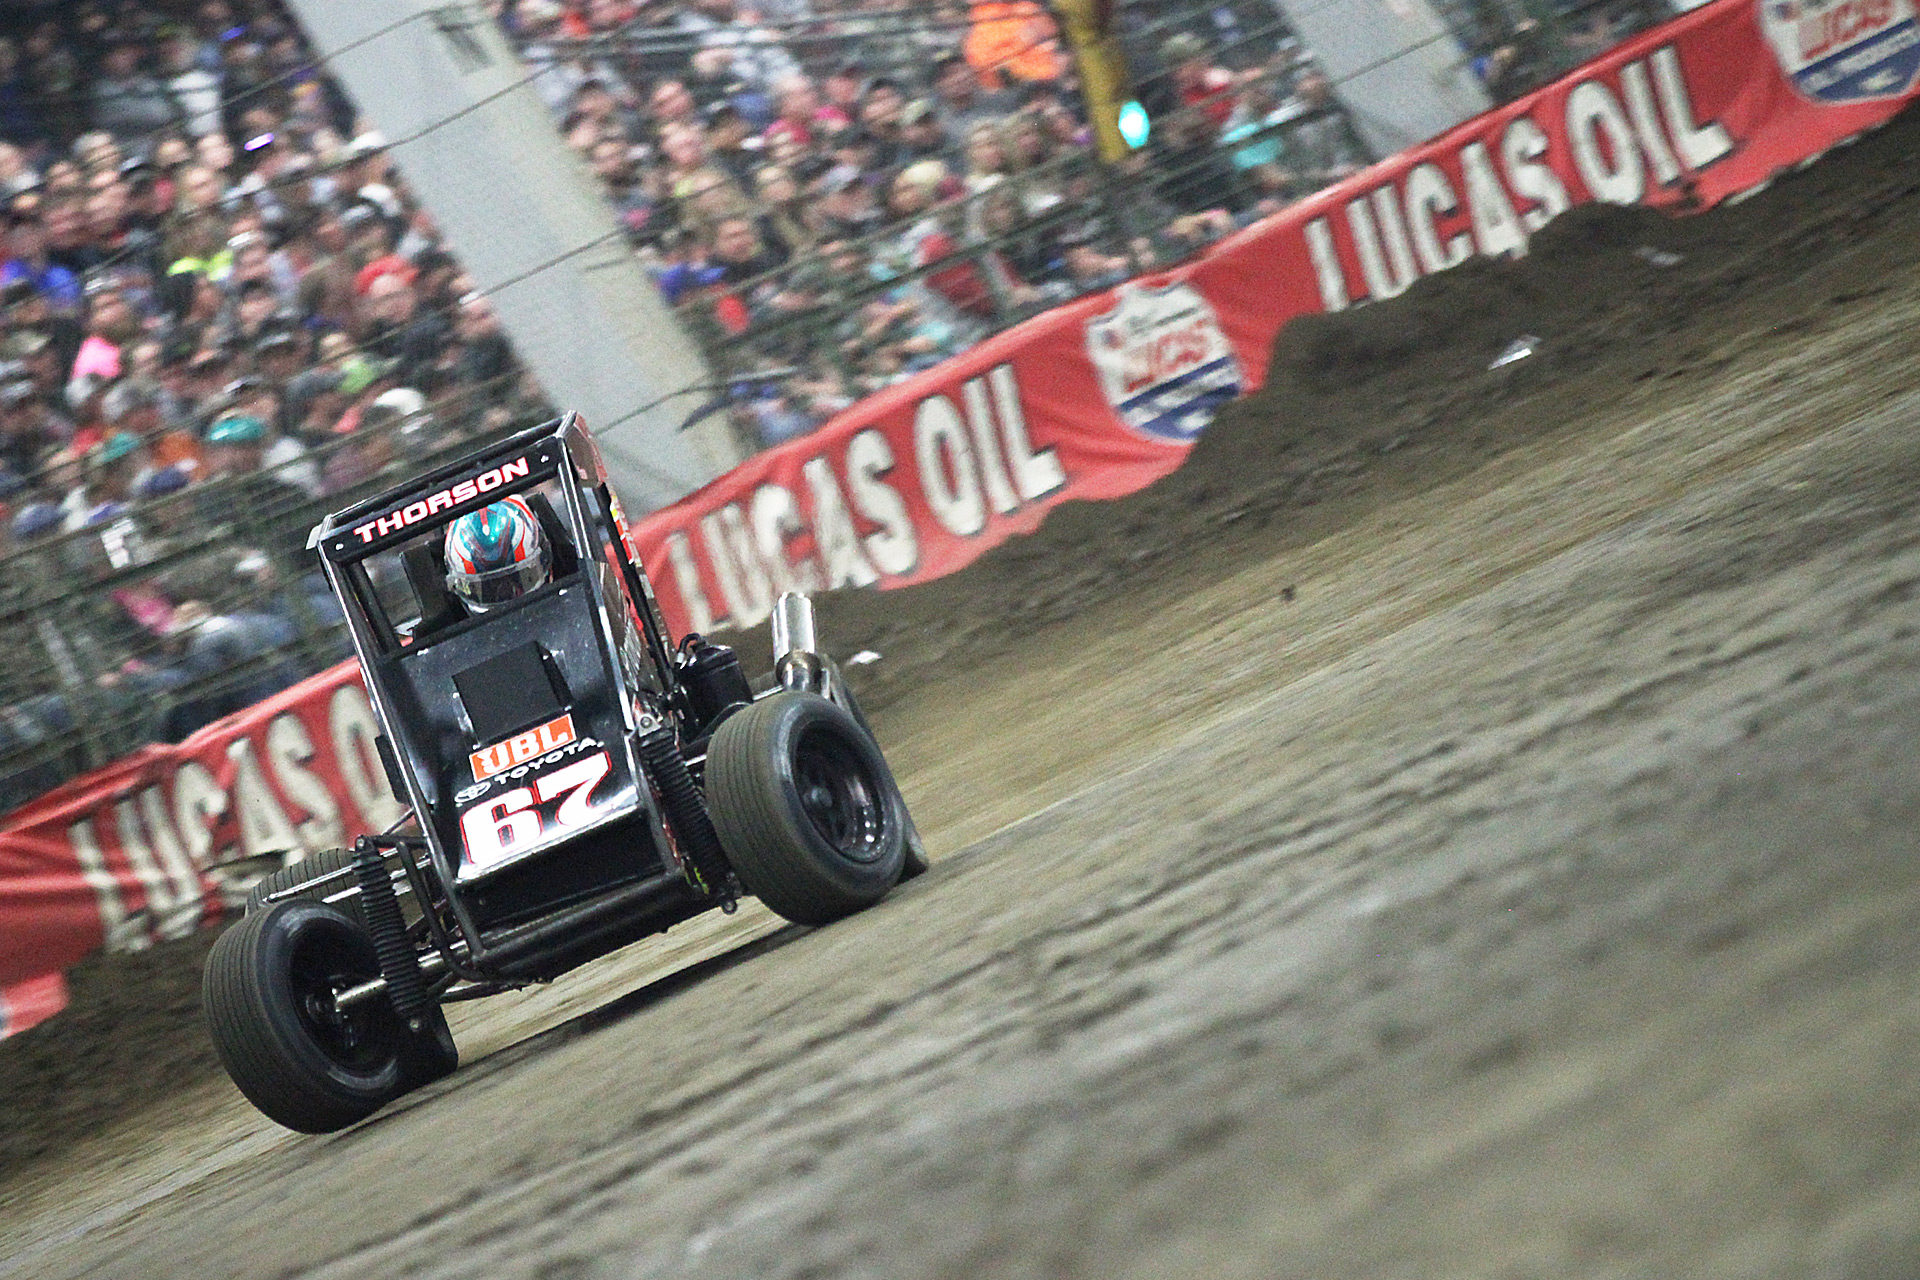 Tanner Thorson on the gas out of turn 2 at the 2016 Chili Bowl Nationals. ( Jeffrey Turford / TDP )